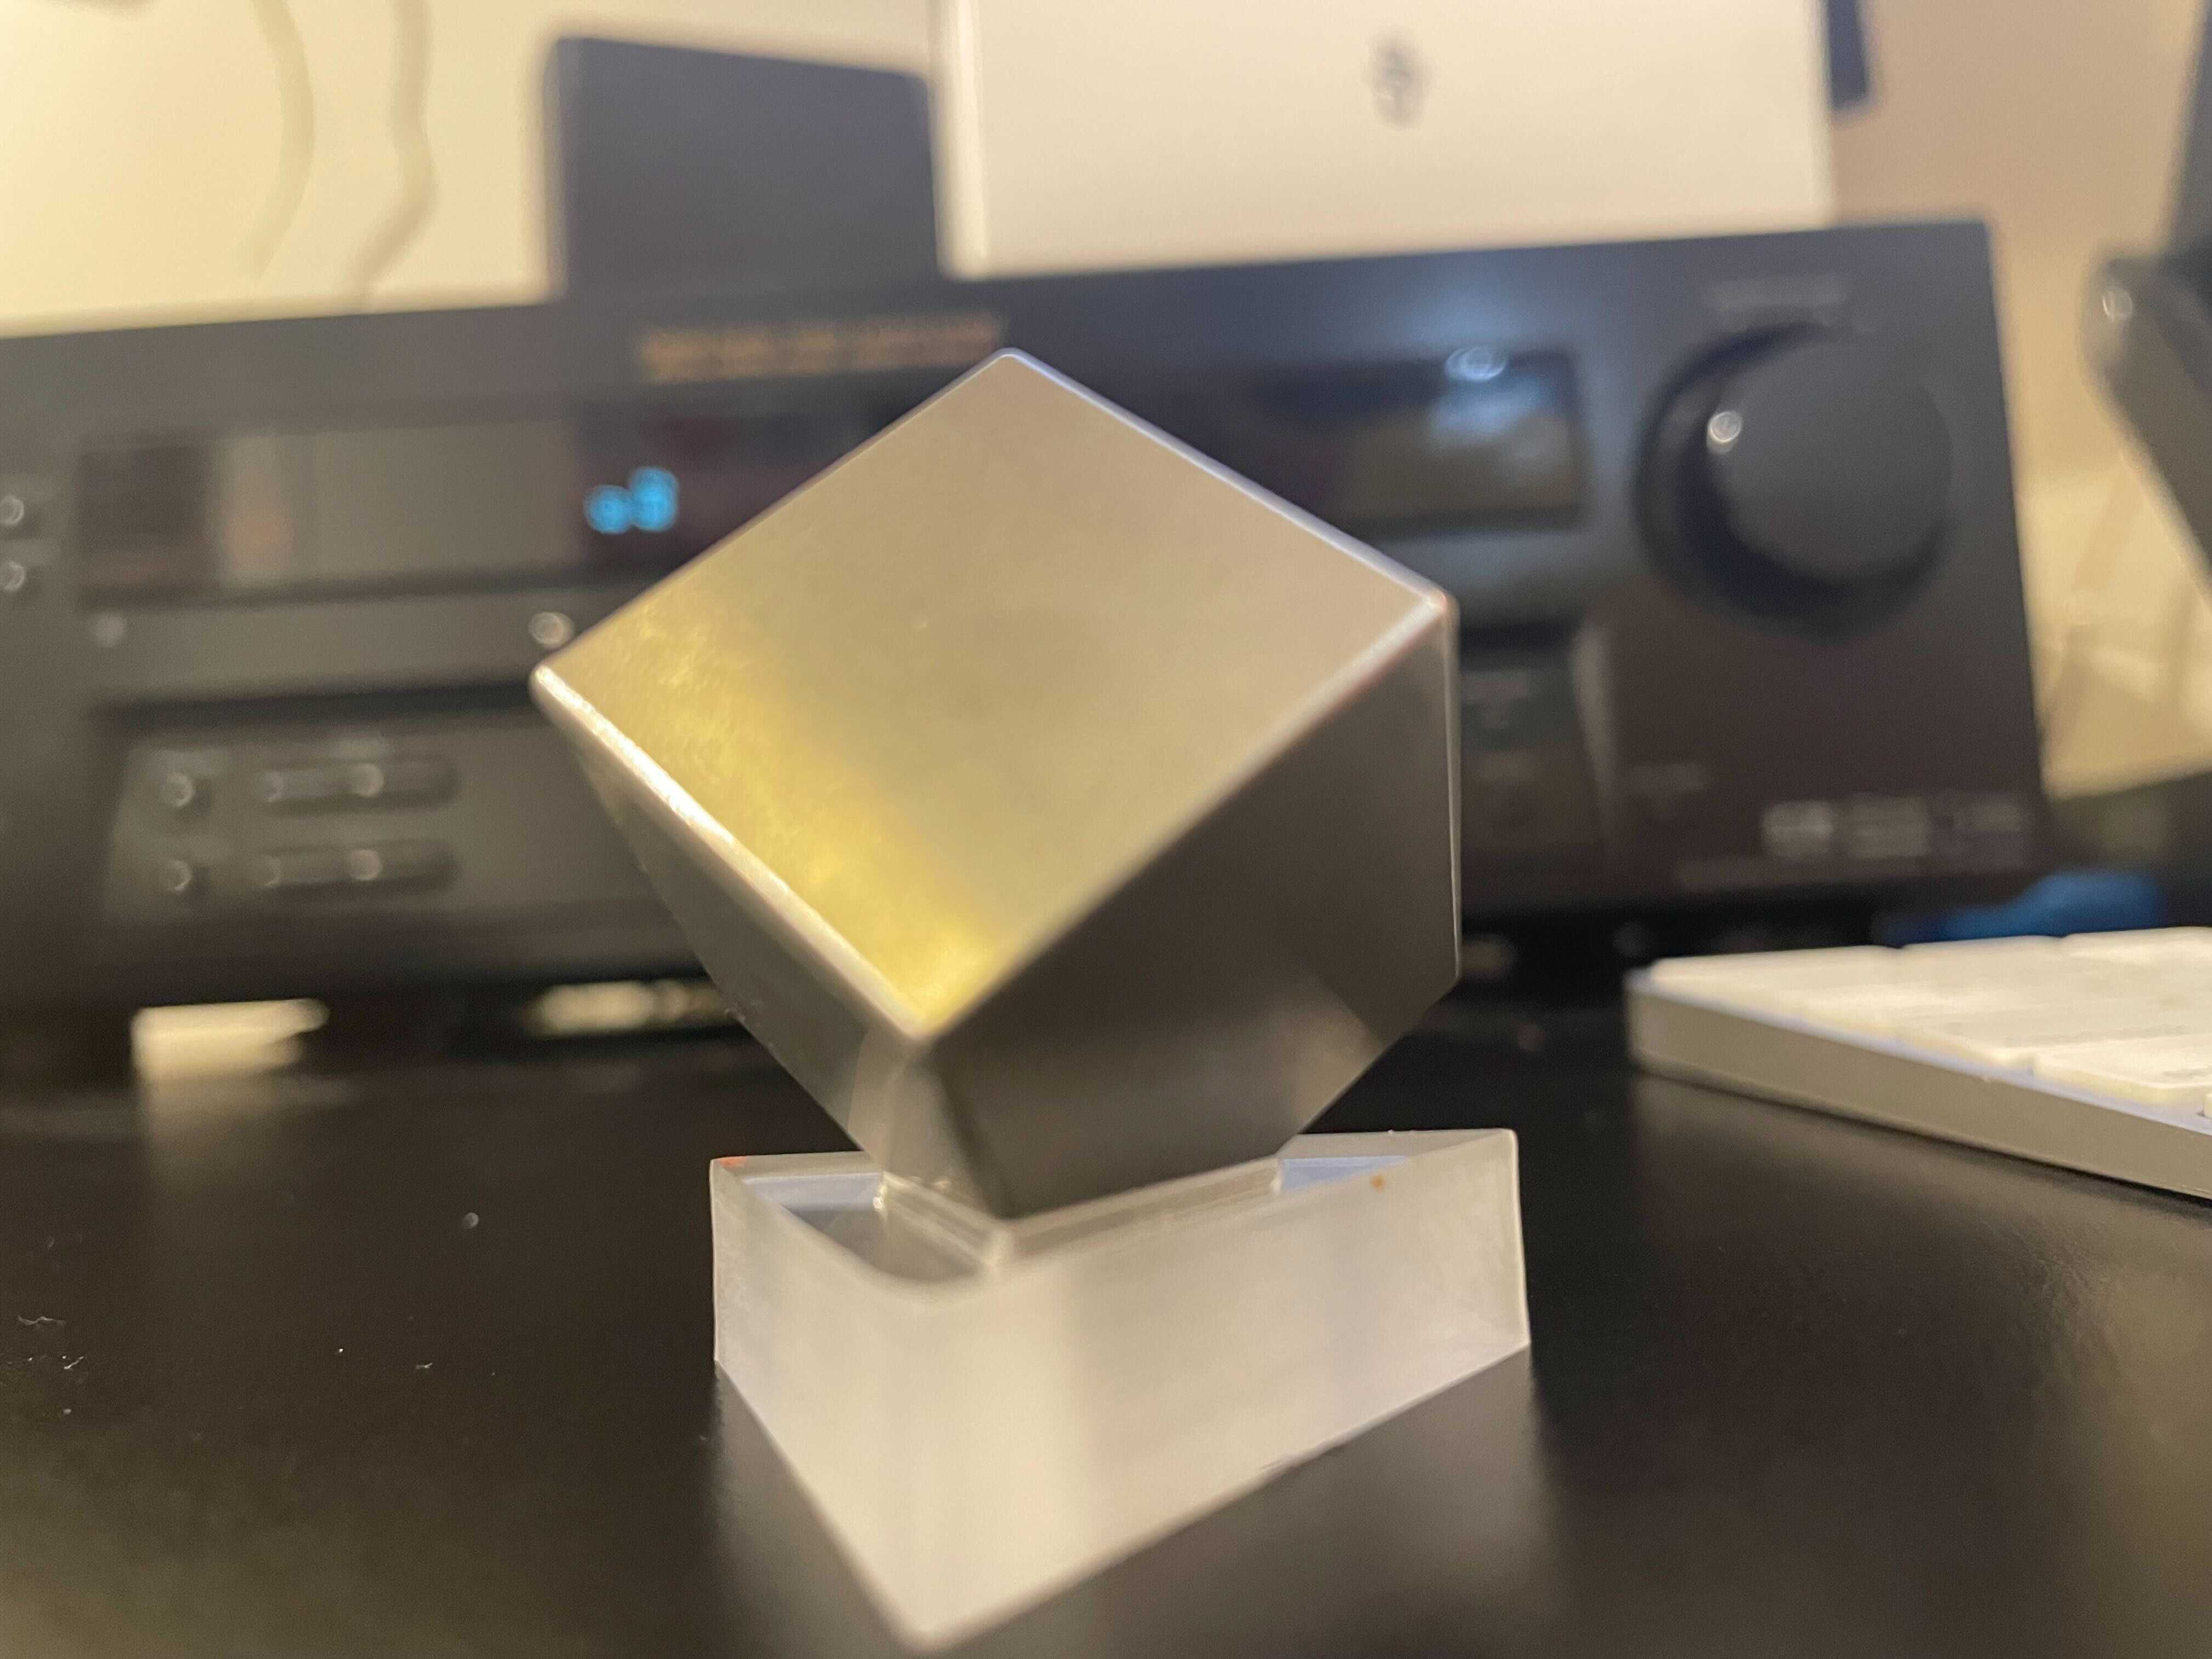 Non-Fungible Token (NFT) Collection - That Tungsten Company is Auctioning Its Largest-Ever Cube as an NFT